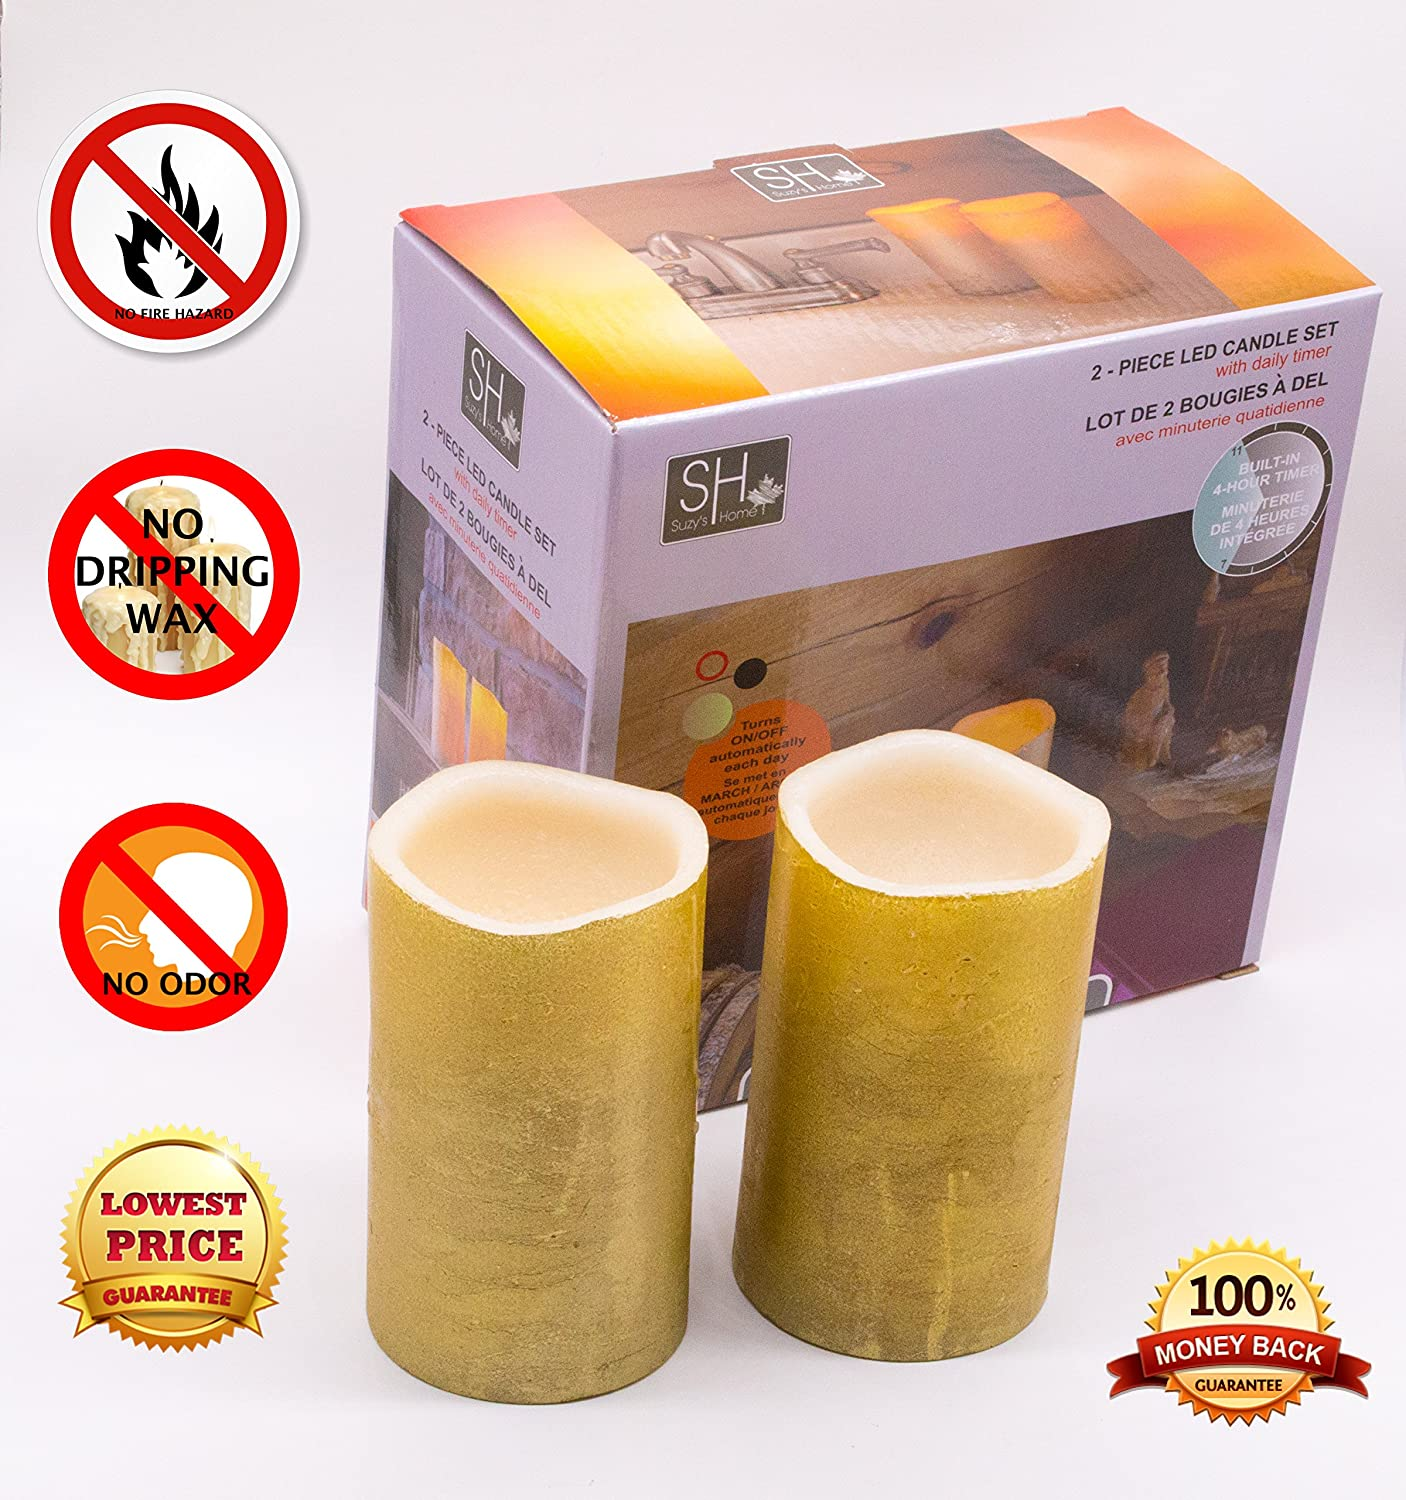 LED Candles Set of Two Realistic Battery Powered Odorless Flameless Dripless Candles from Suzy's Home Collection Toy Target Inc.